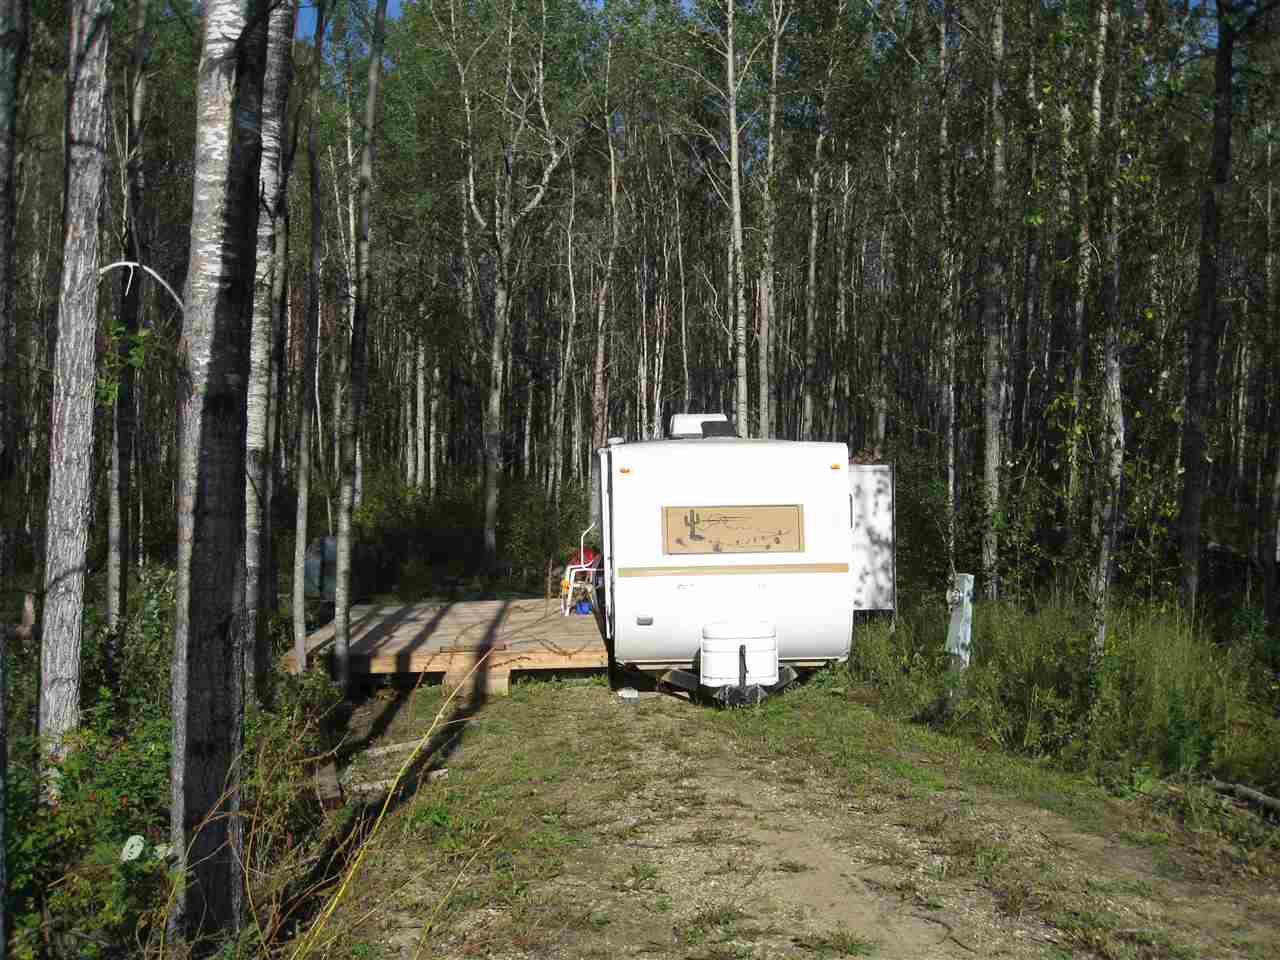 This great RV lot is located in a quiet cul-de-sac at the Lake Arnault RV Resort only 50 minutes west of Spruce Grove. Comes complete with a 2005 Conquest Gulfstream Travel Trailer that sleeps 6. The property has Water, Power , 750 Gallon Holding Tank and Garbage Disposal. This is a Great getaway property and also comes with a Canoe & Oars ,BBQ and Deck. There is an Annual Condo fee of only 1300.00. The Unit number is 66. Get ready to enjoy the fall with this serviced Lot and RV!!